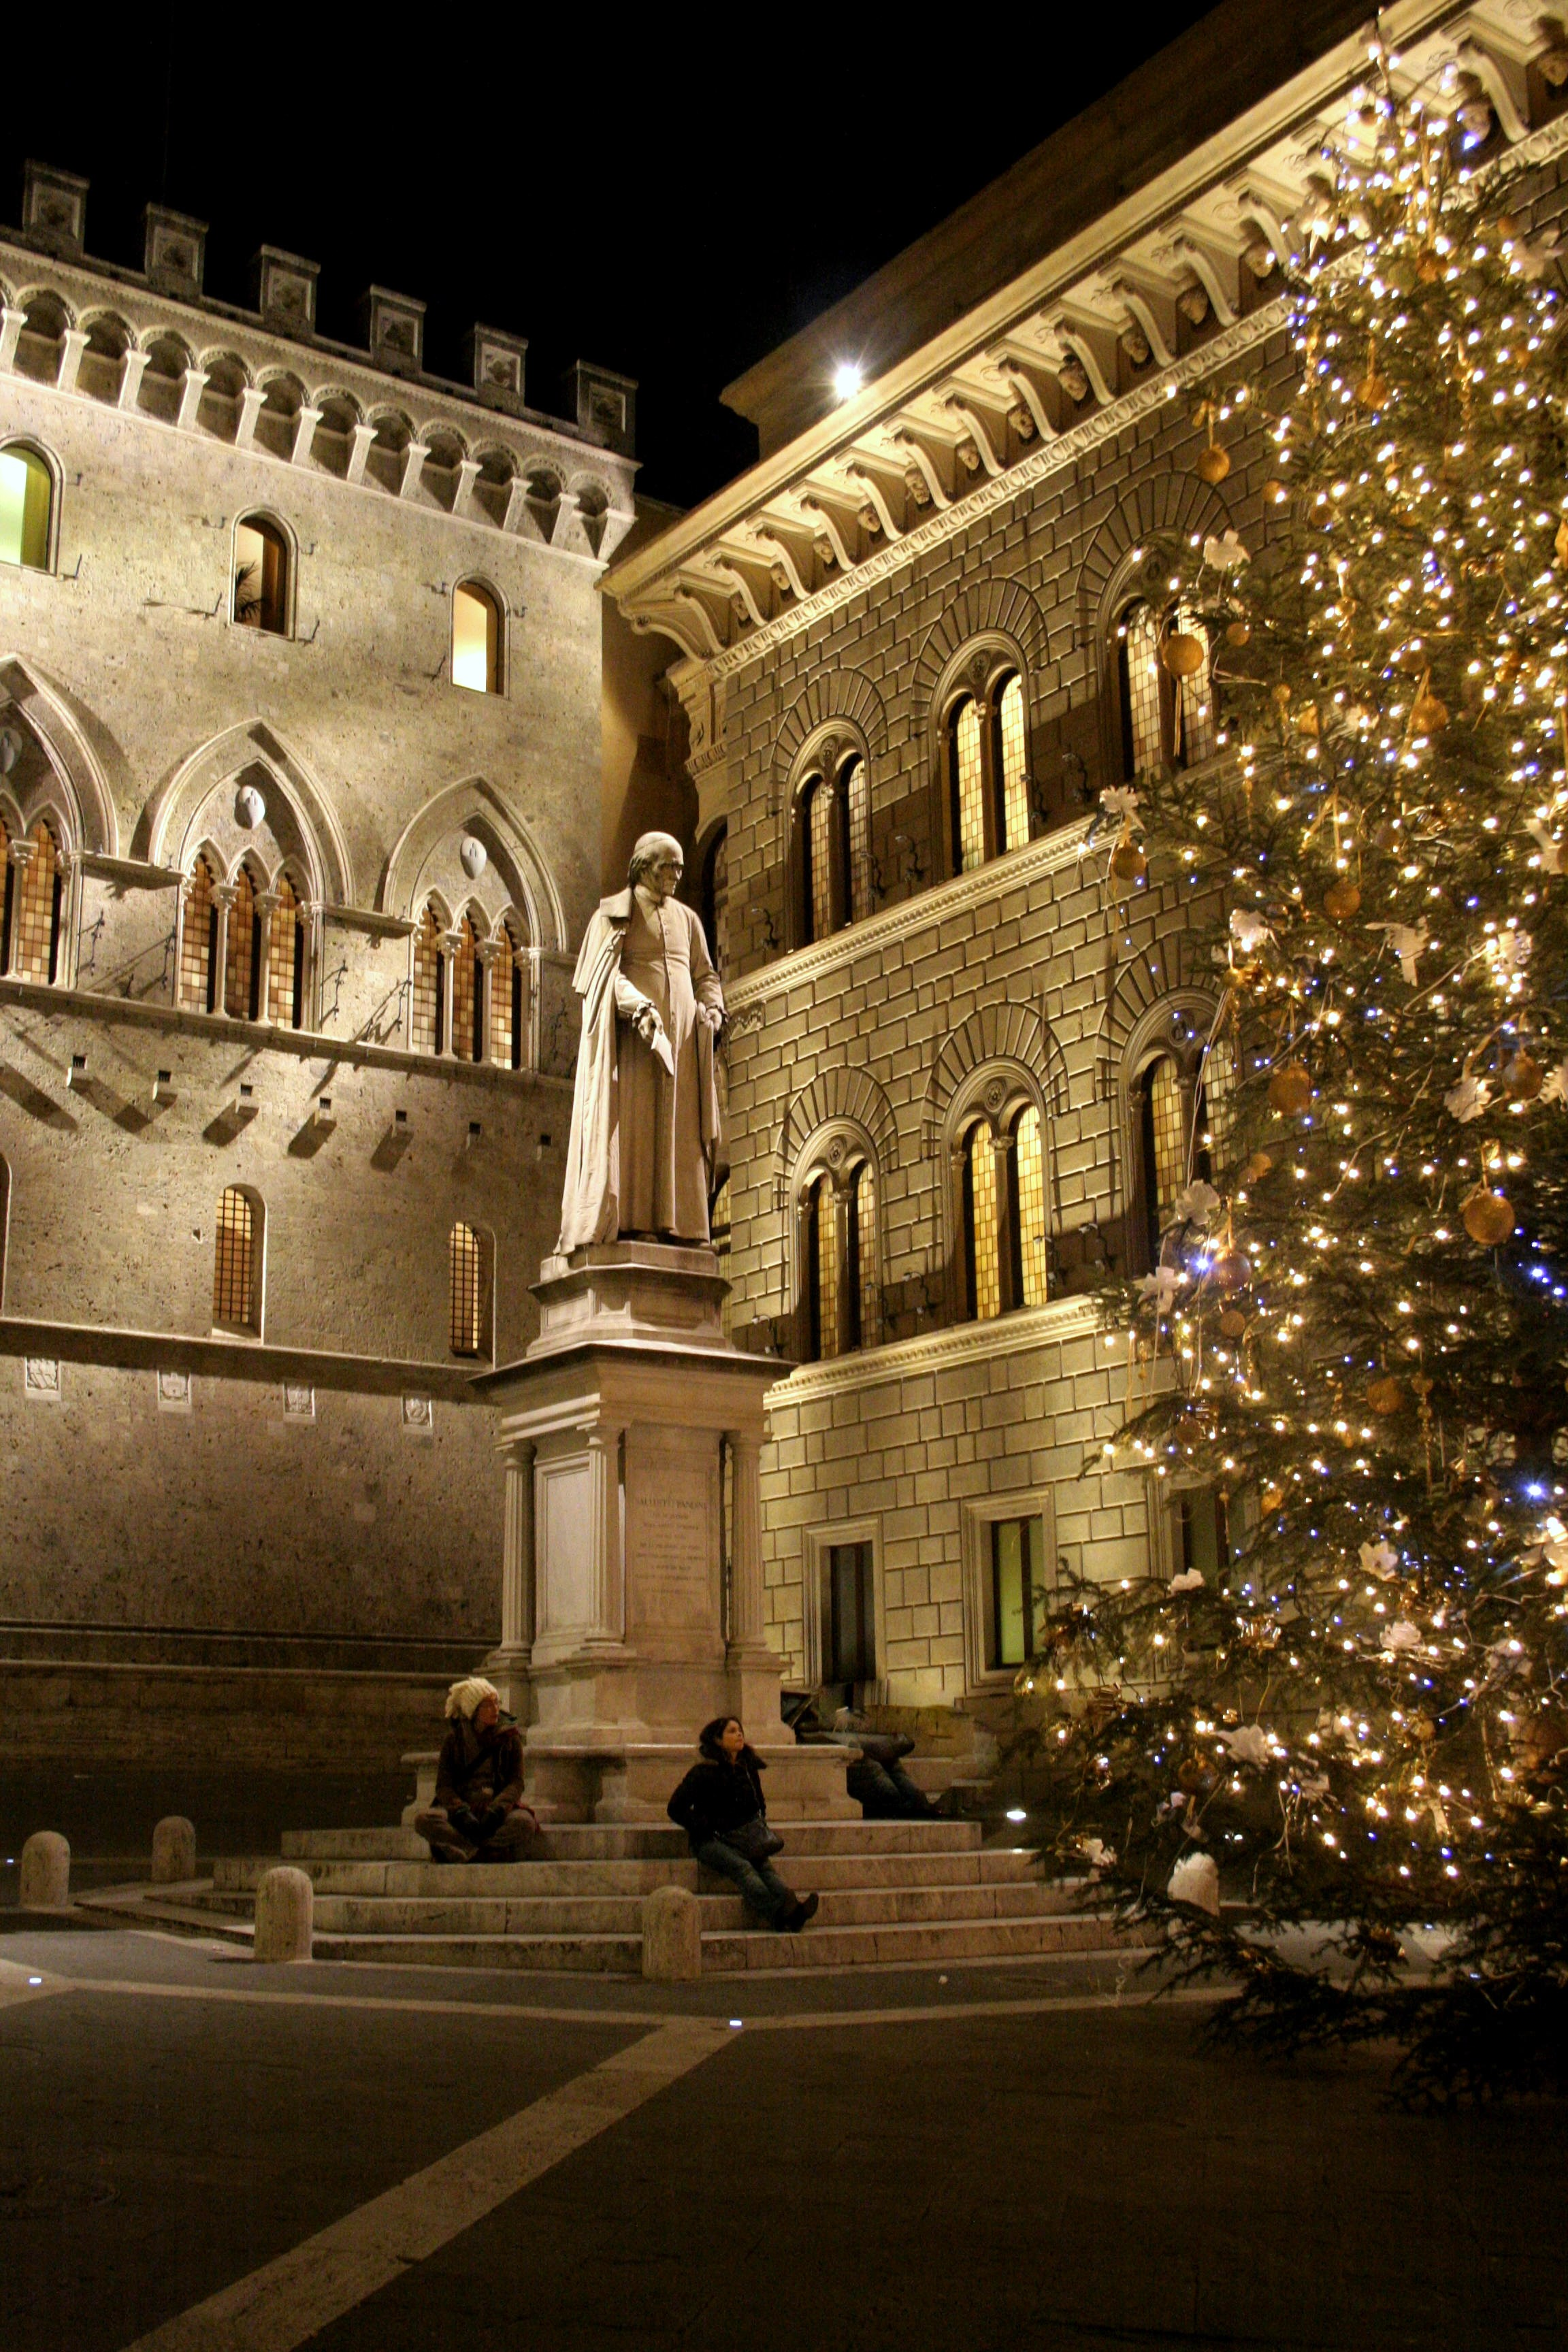 Christmas in Siena